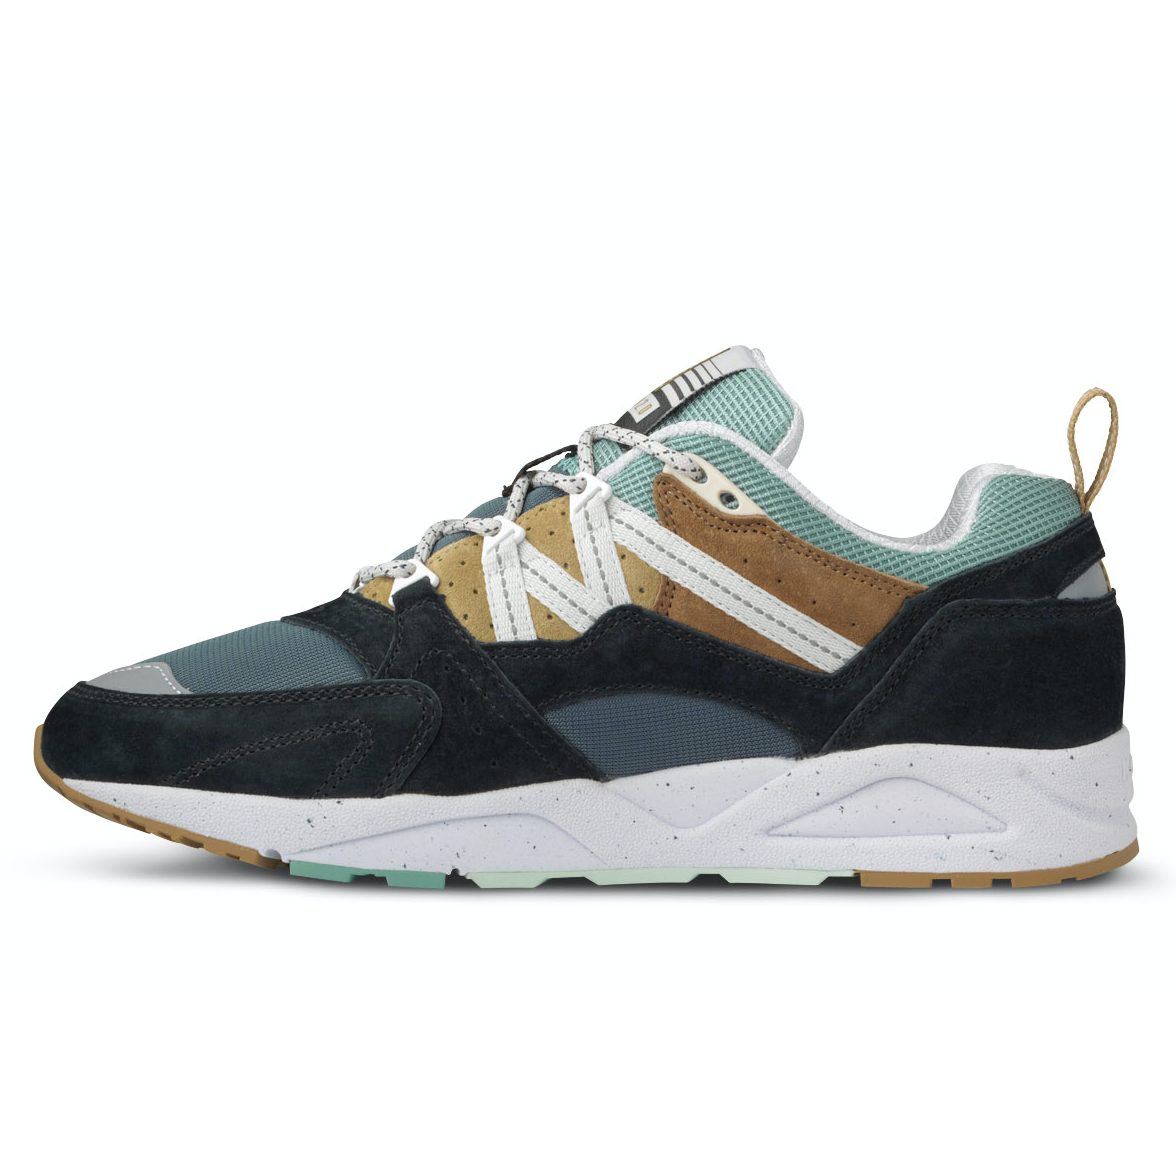 karhu-fusion-2-0-jet-black-pale-acqua-side-2